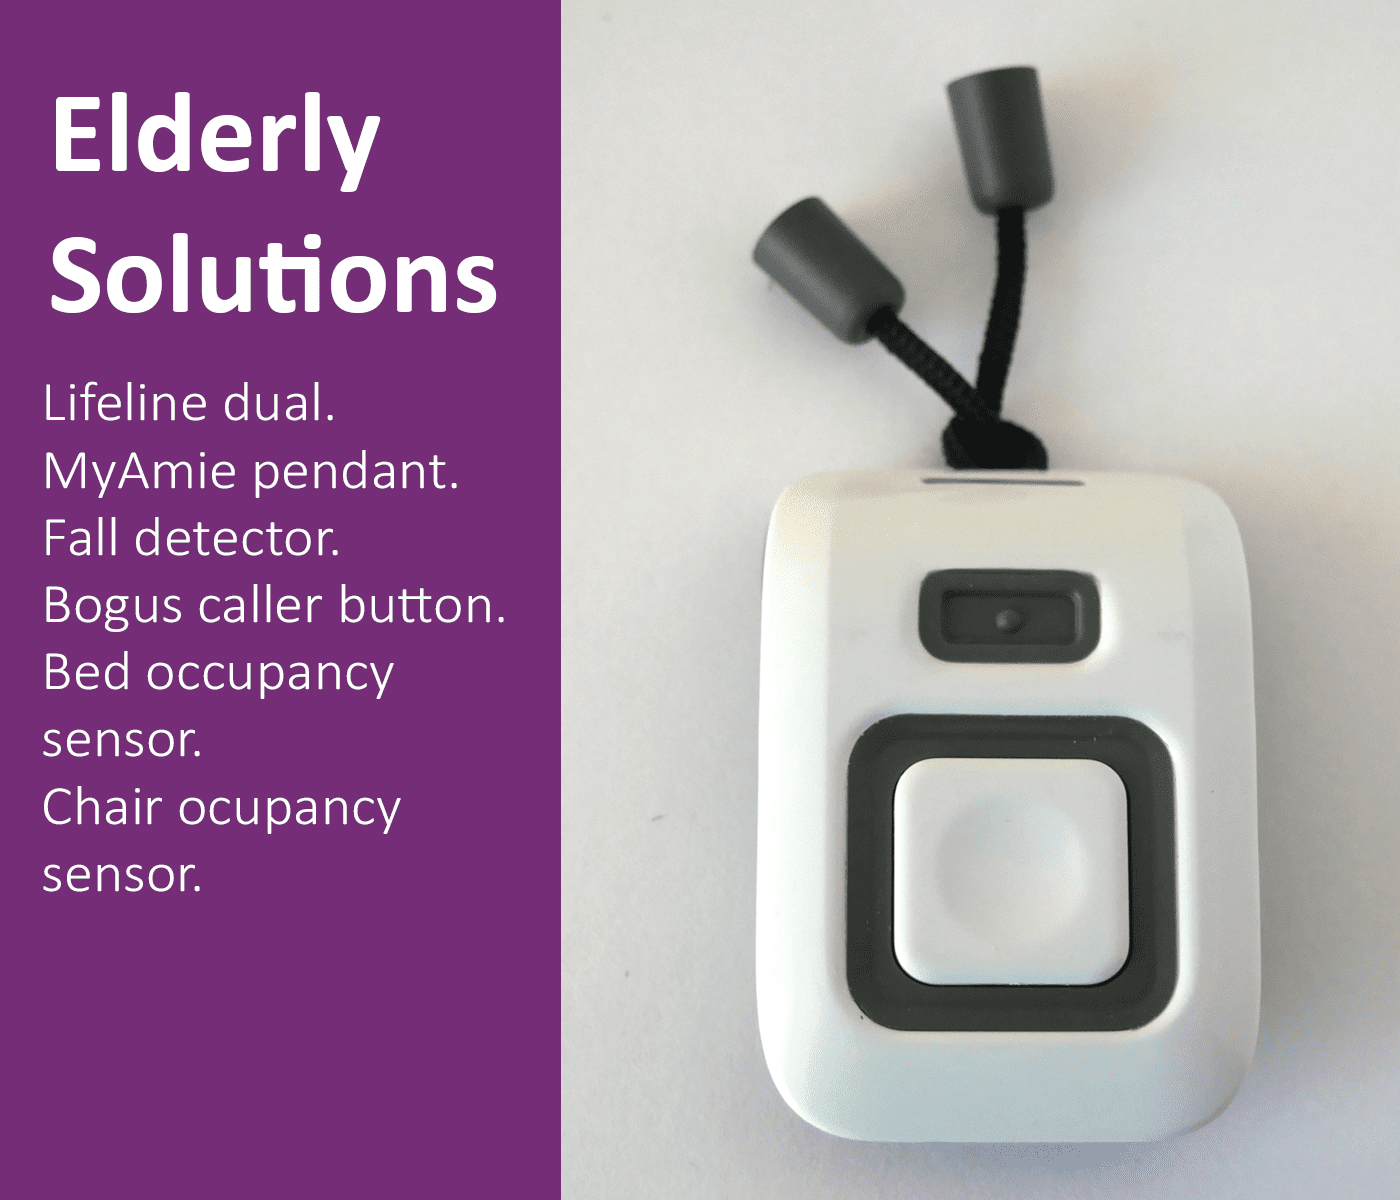 elderly-solutions-new